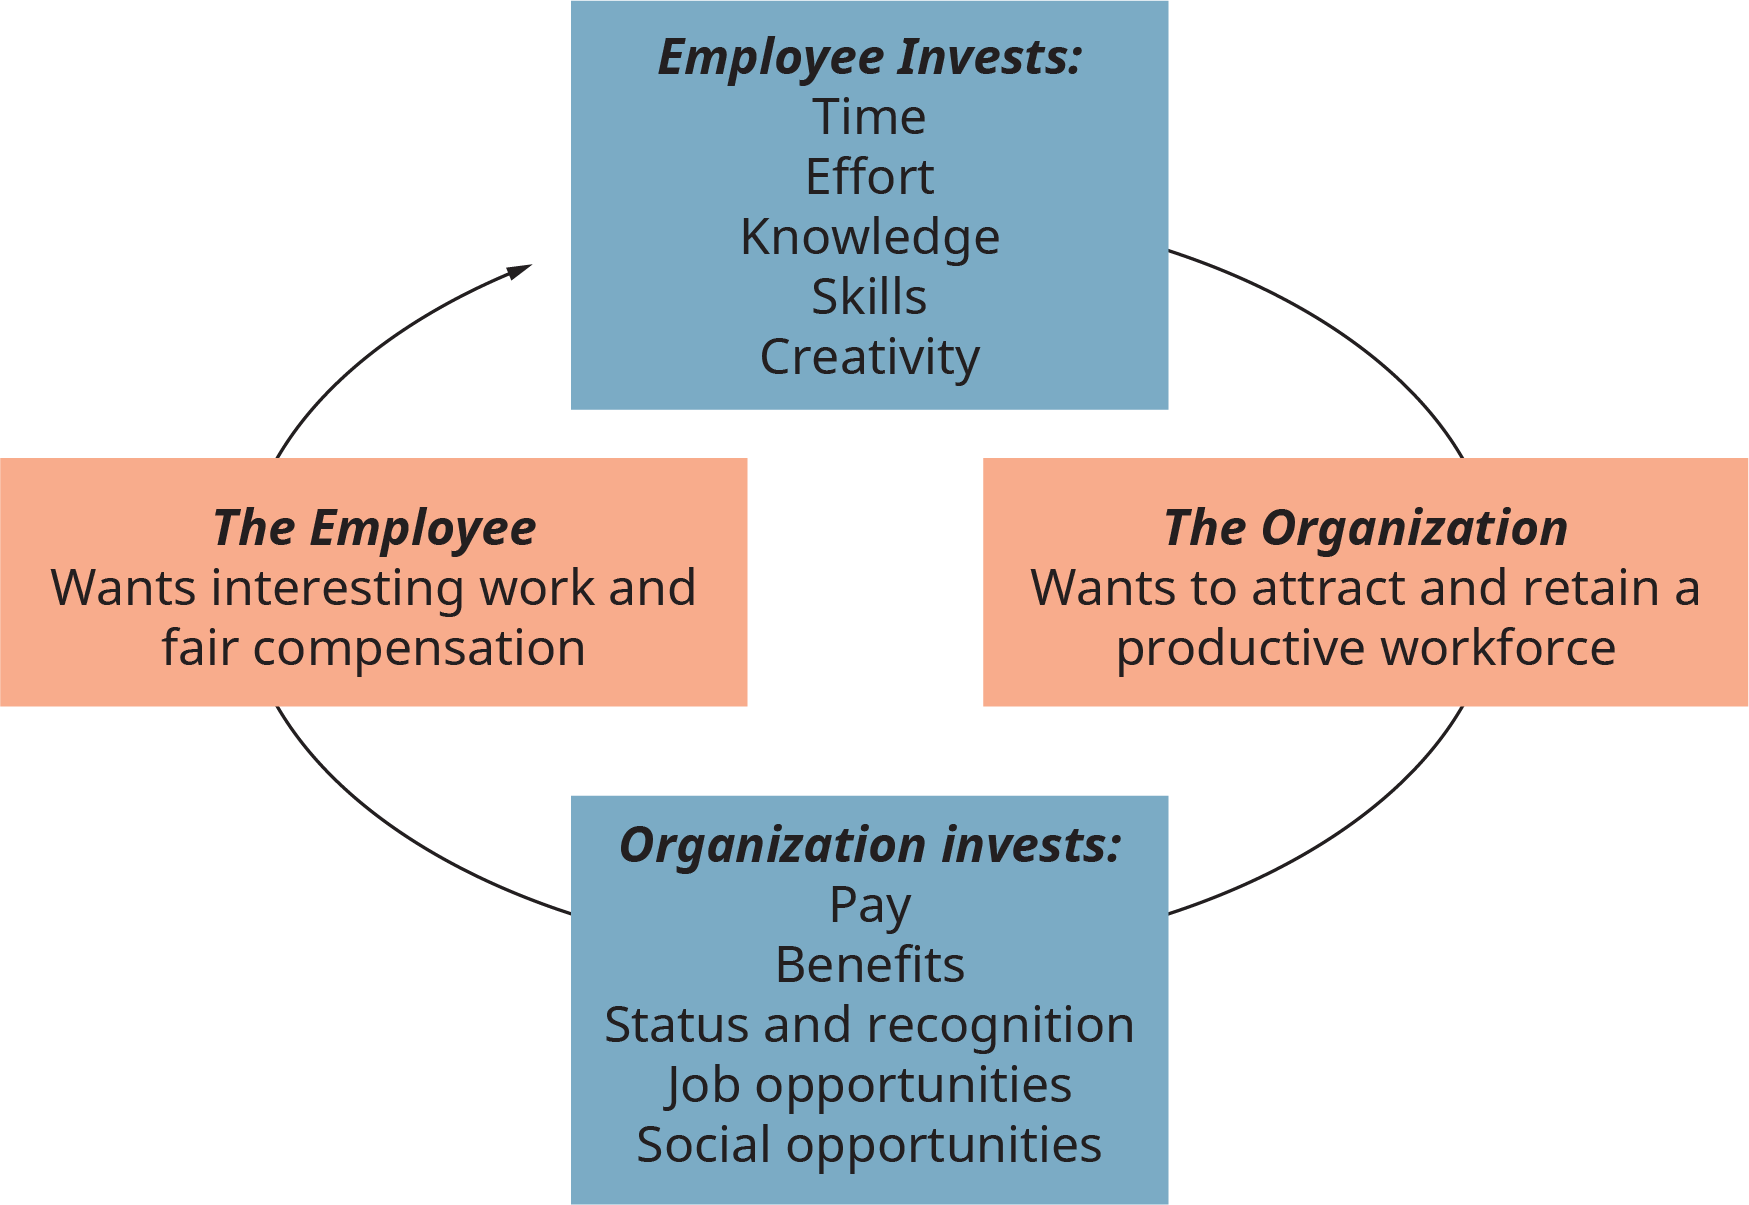 A diagram illustrates the exchange process between employee and organization.